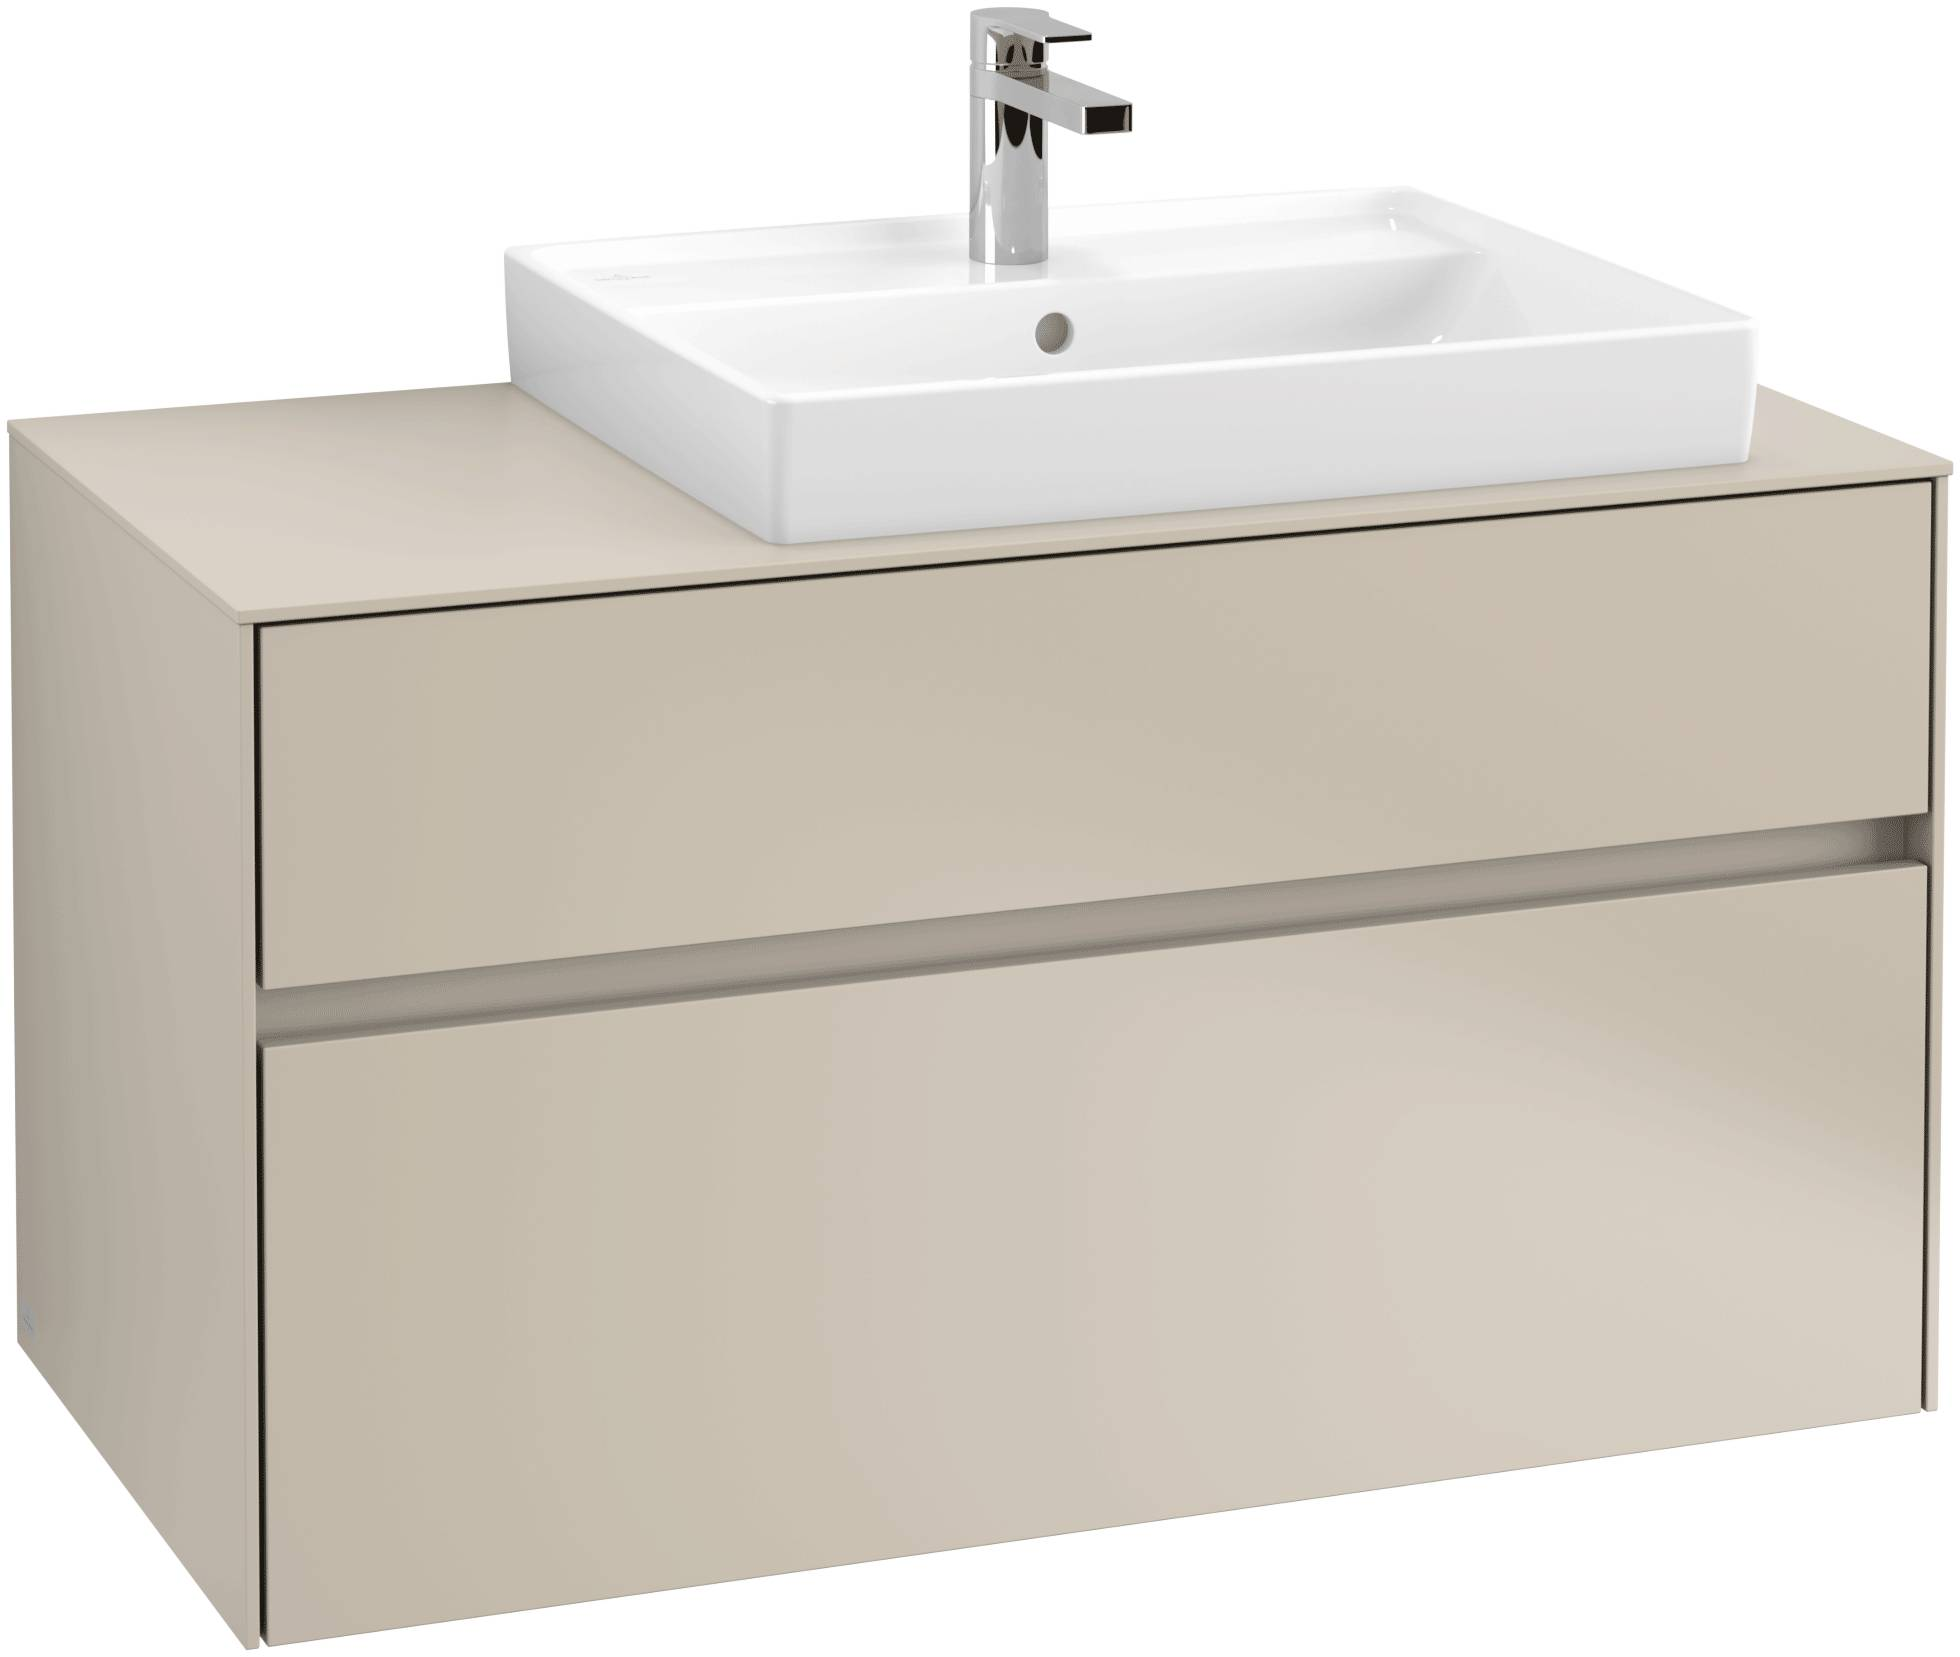 Villeroy & Boch Villeroy & Boch Collaro - Meuble sous lavabo with 2 drawers & 1 cut-out right 1000 x 548 x 500mm gris soft